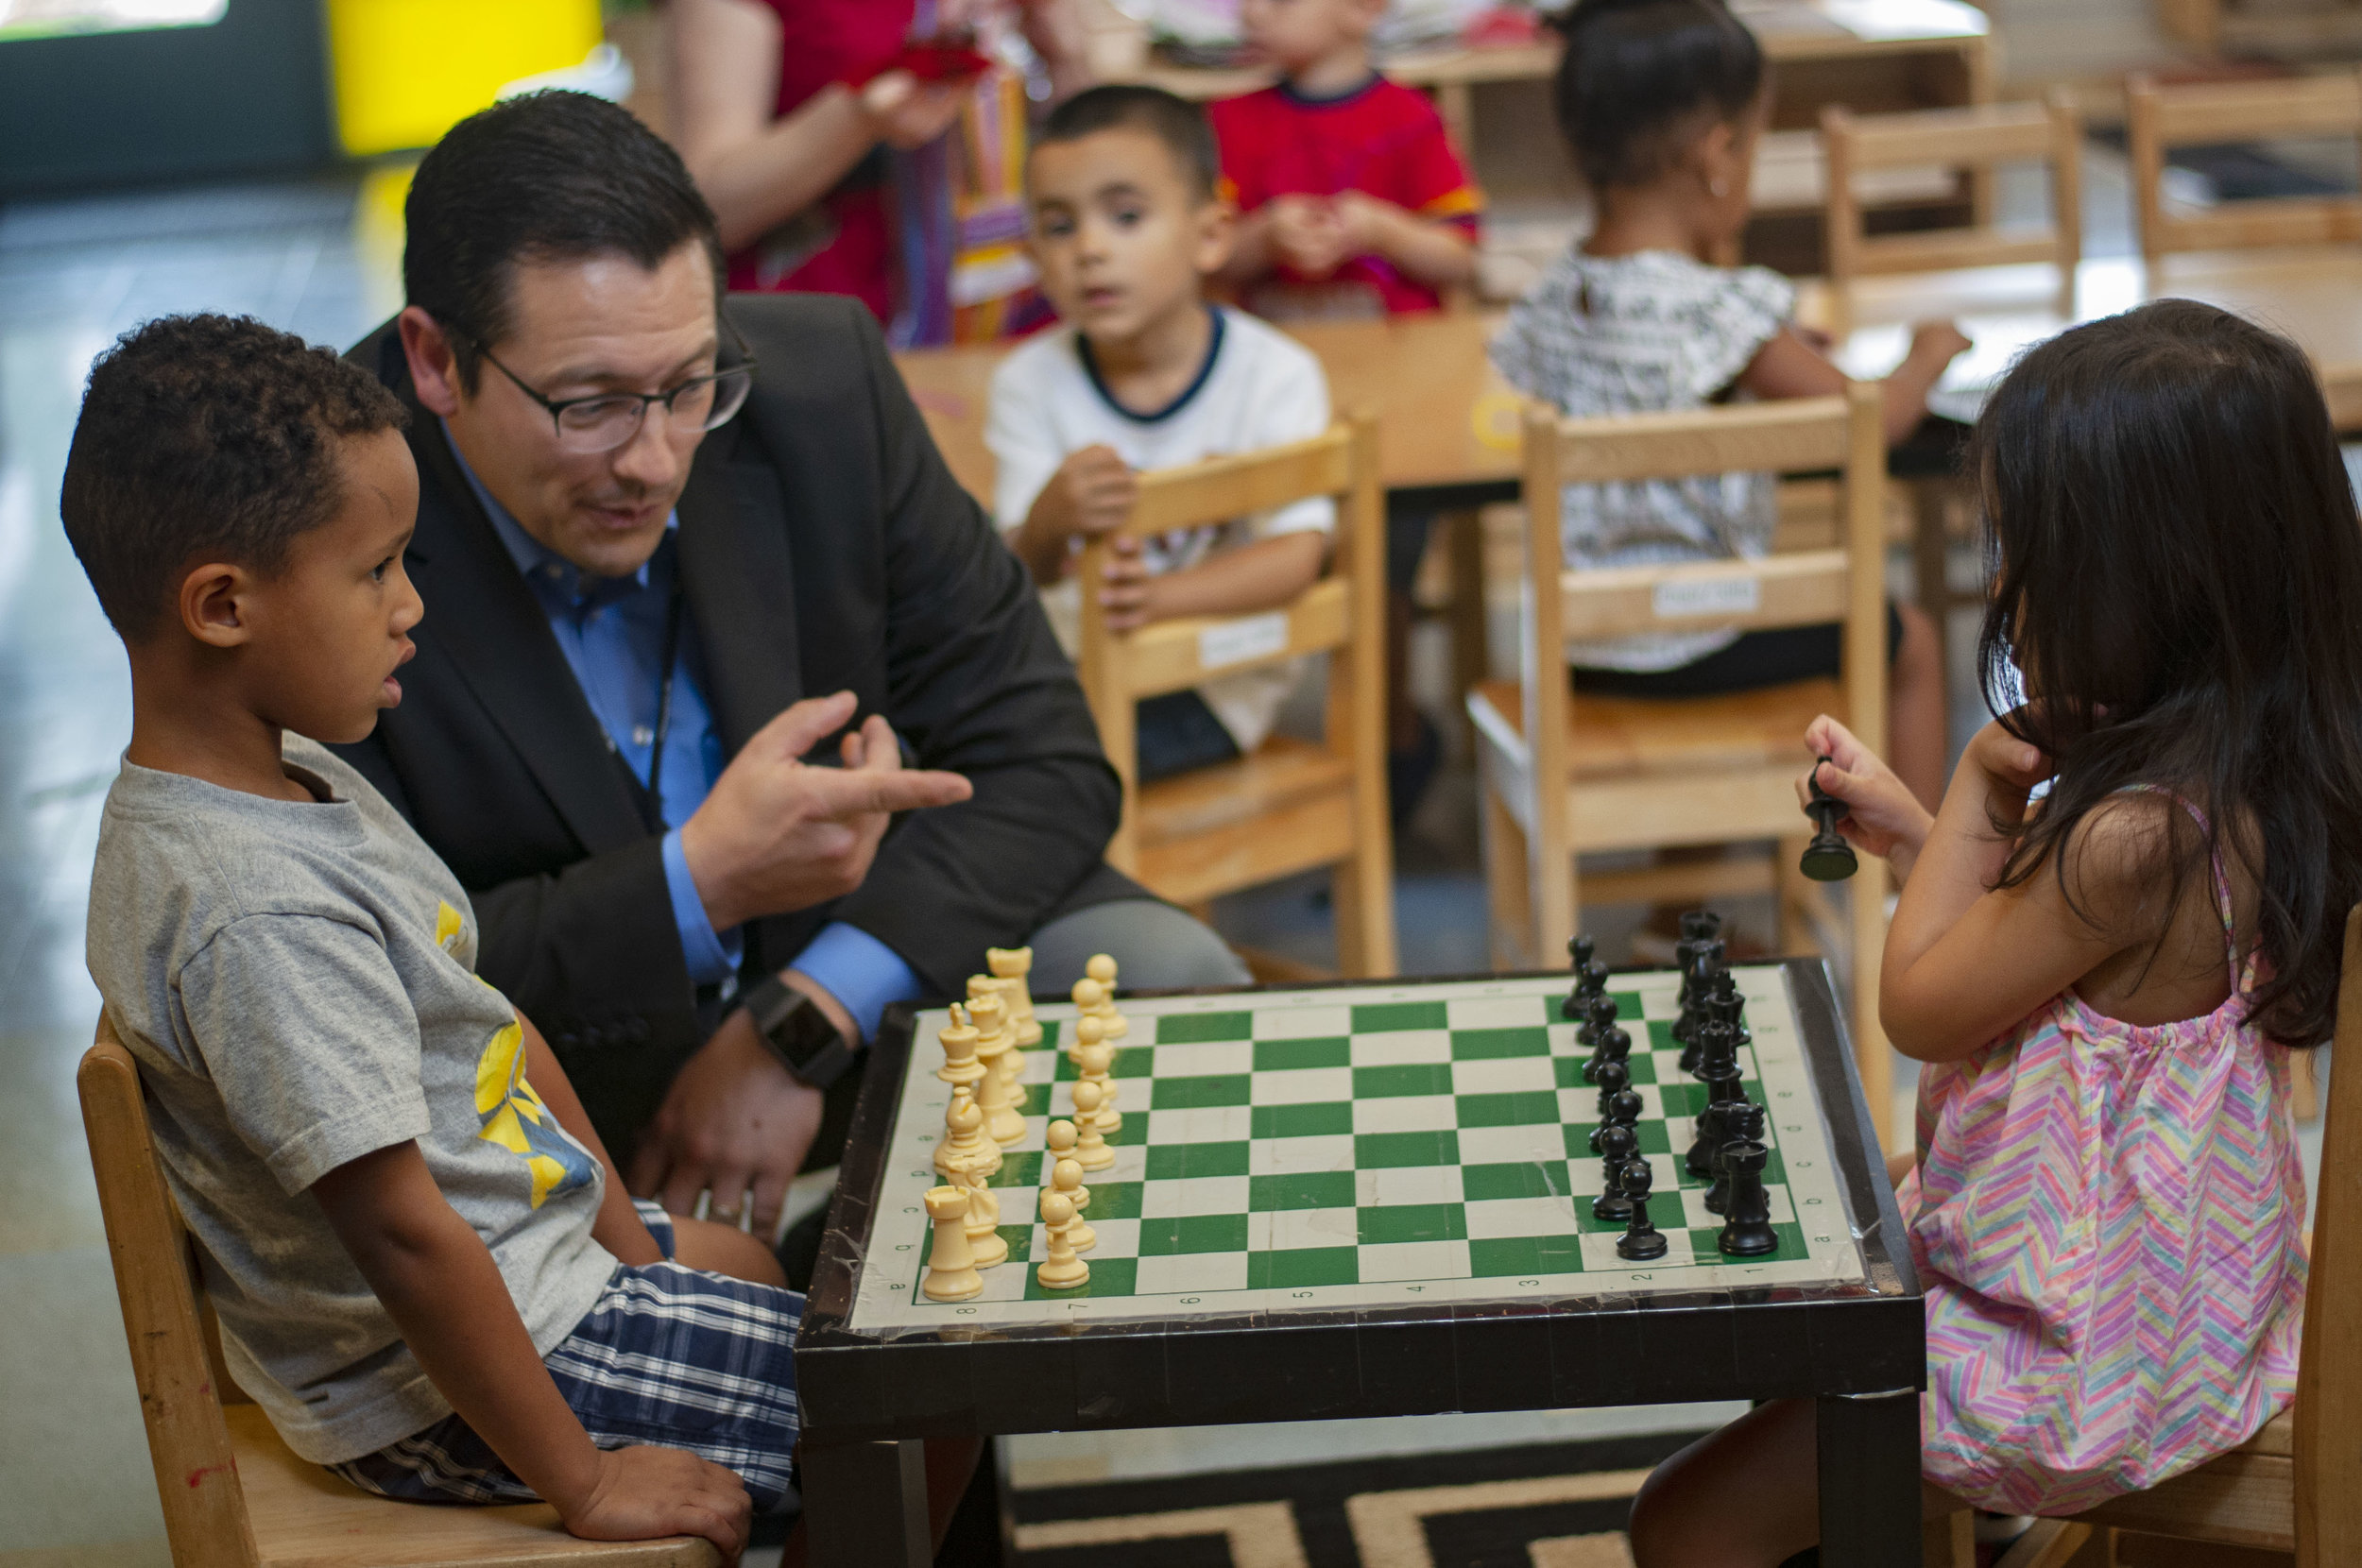 Playing chess with preschoolers